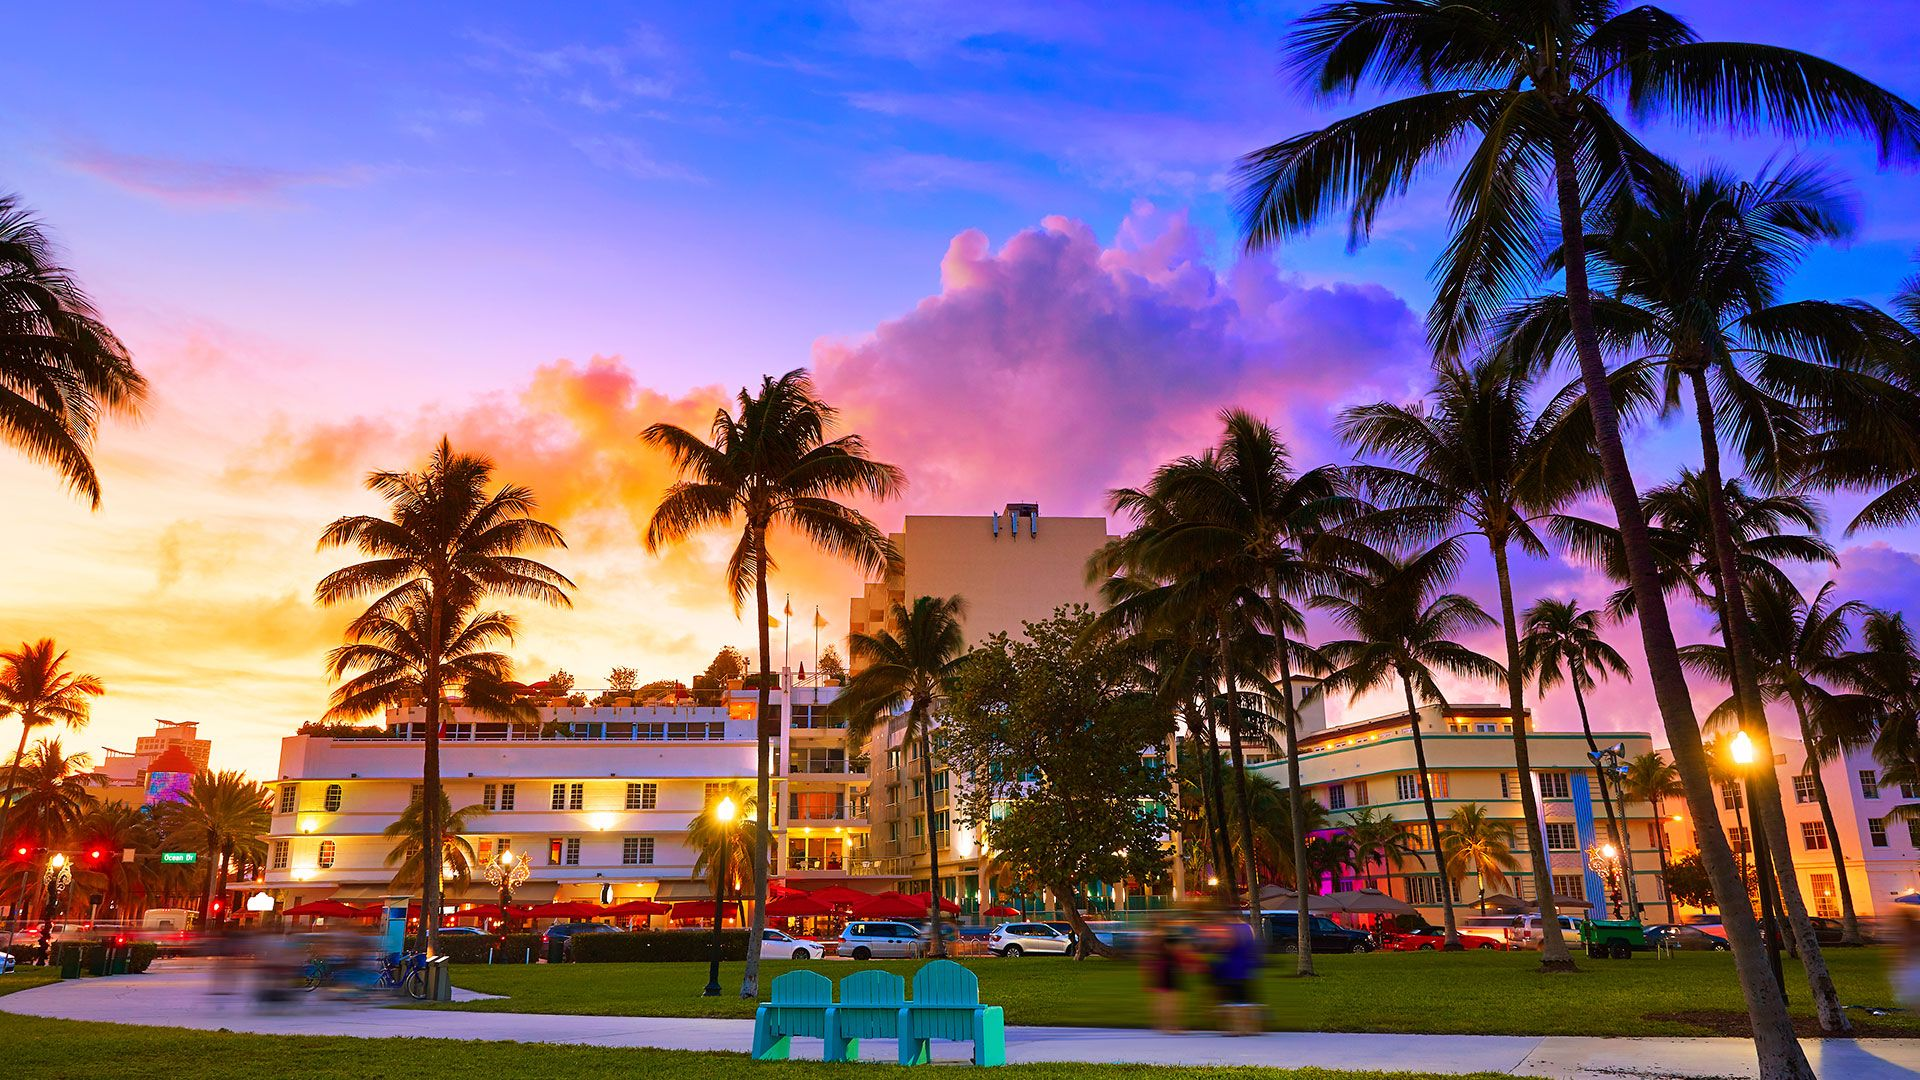 Top Free Miami Beach Backgrounds